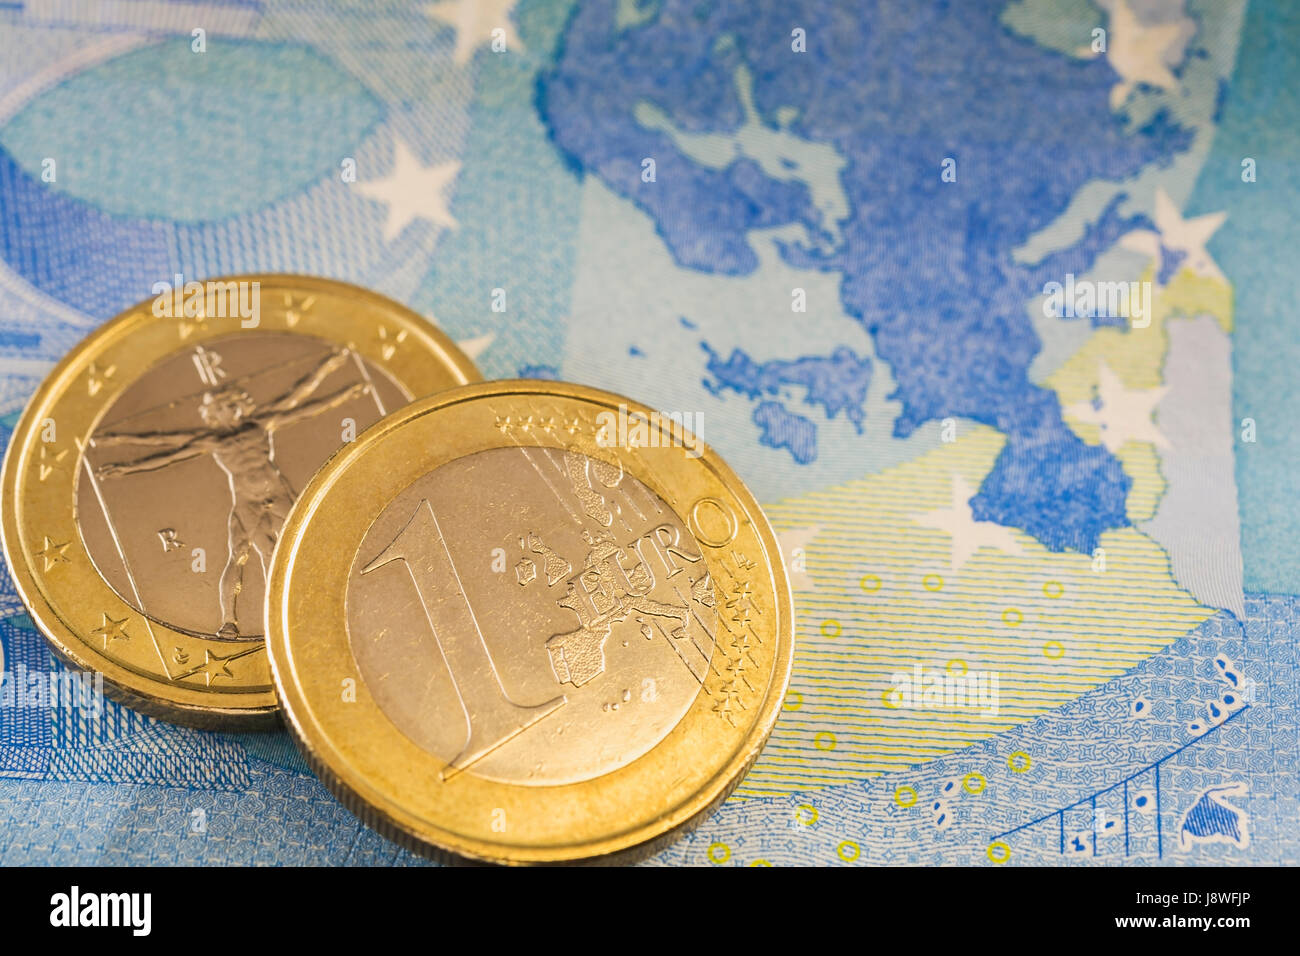 One Euro coins on top of twenty Euros paper currency bank note - Stock Image